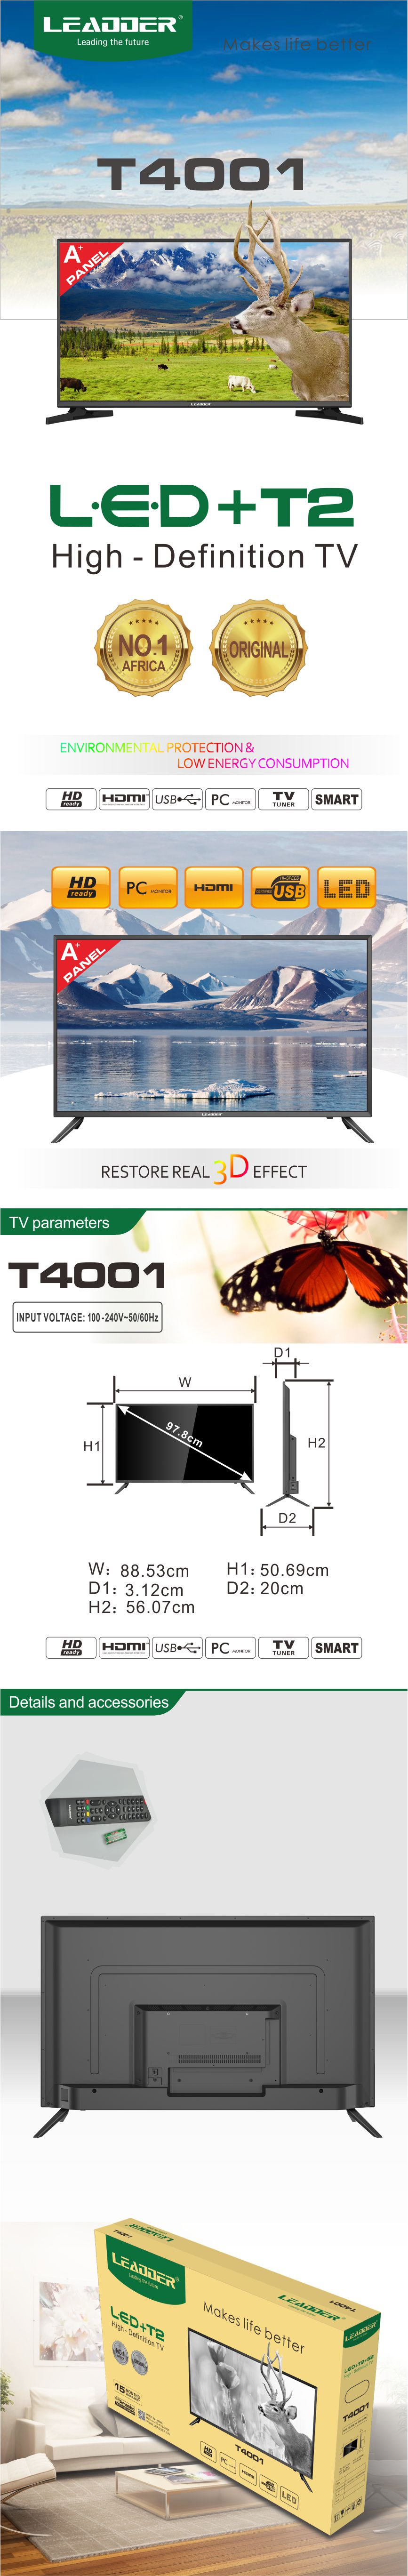 LEADDER LED TV 40 inches High quality surround sound T4001